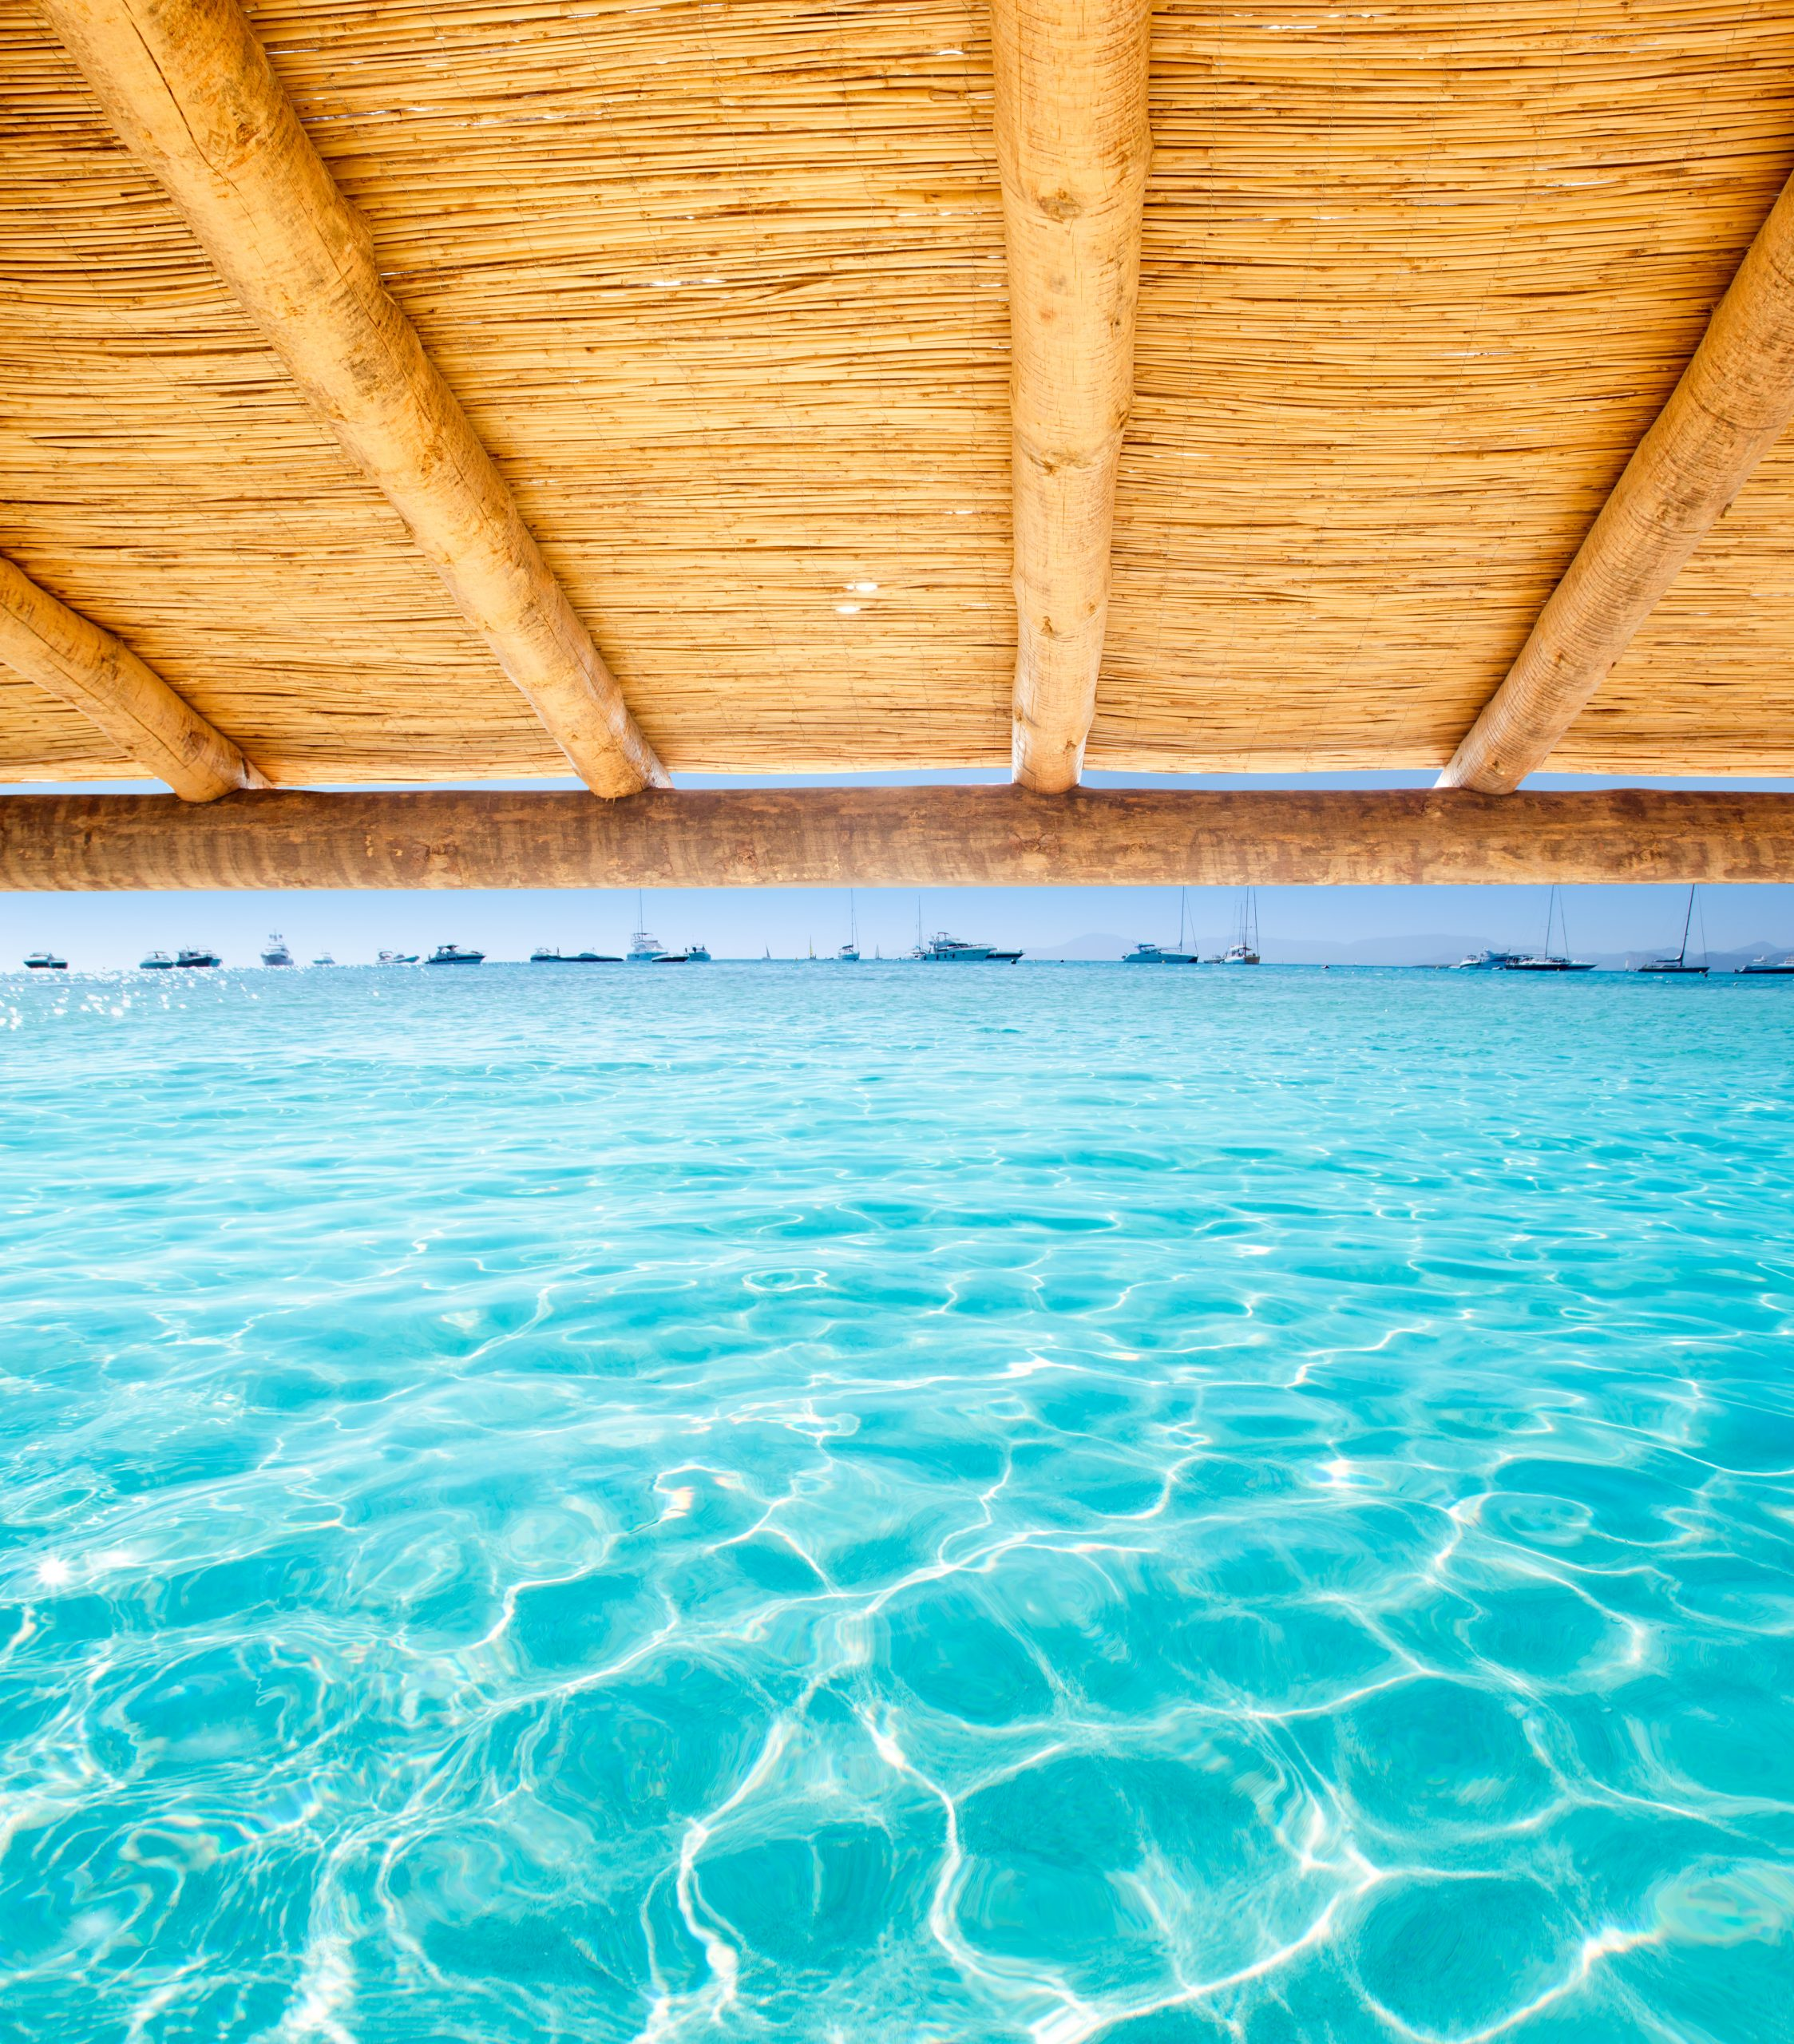 Cane sunroof with tropical perfect beach of Illetes Formentera island